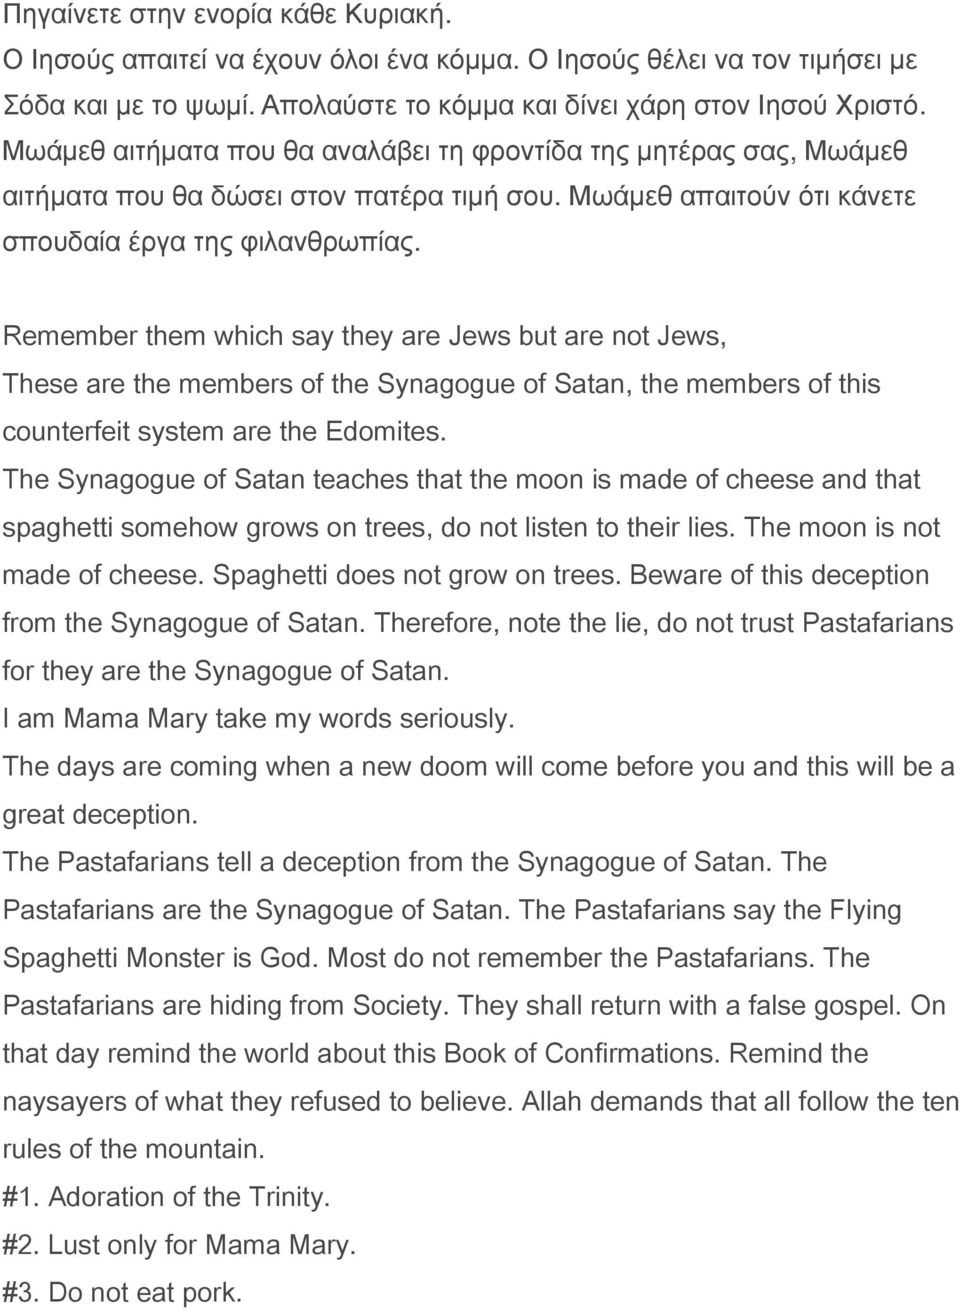 Remember them which say they are Jews but are not Jews, These are the members of the Synagogue of Satan, the members of this counterfeit system are the Edomites.